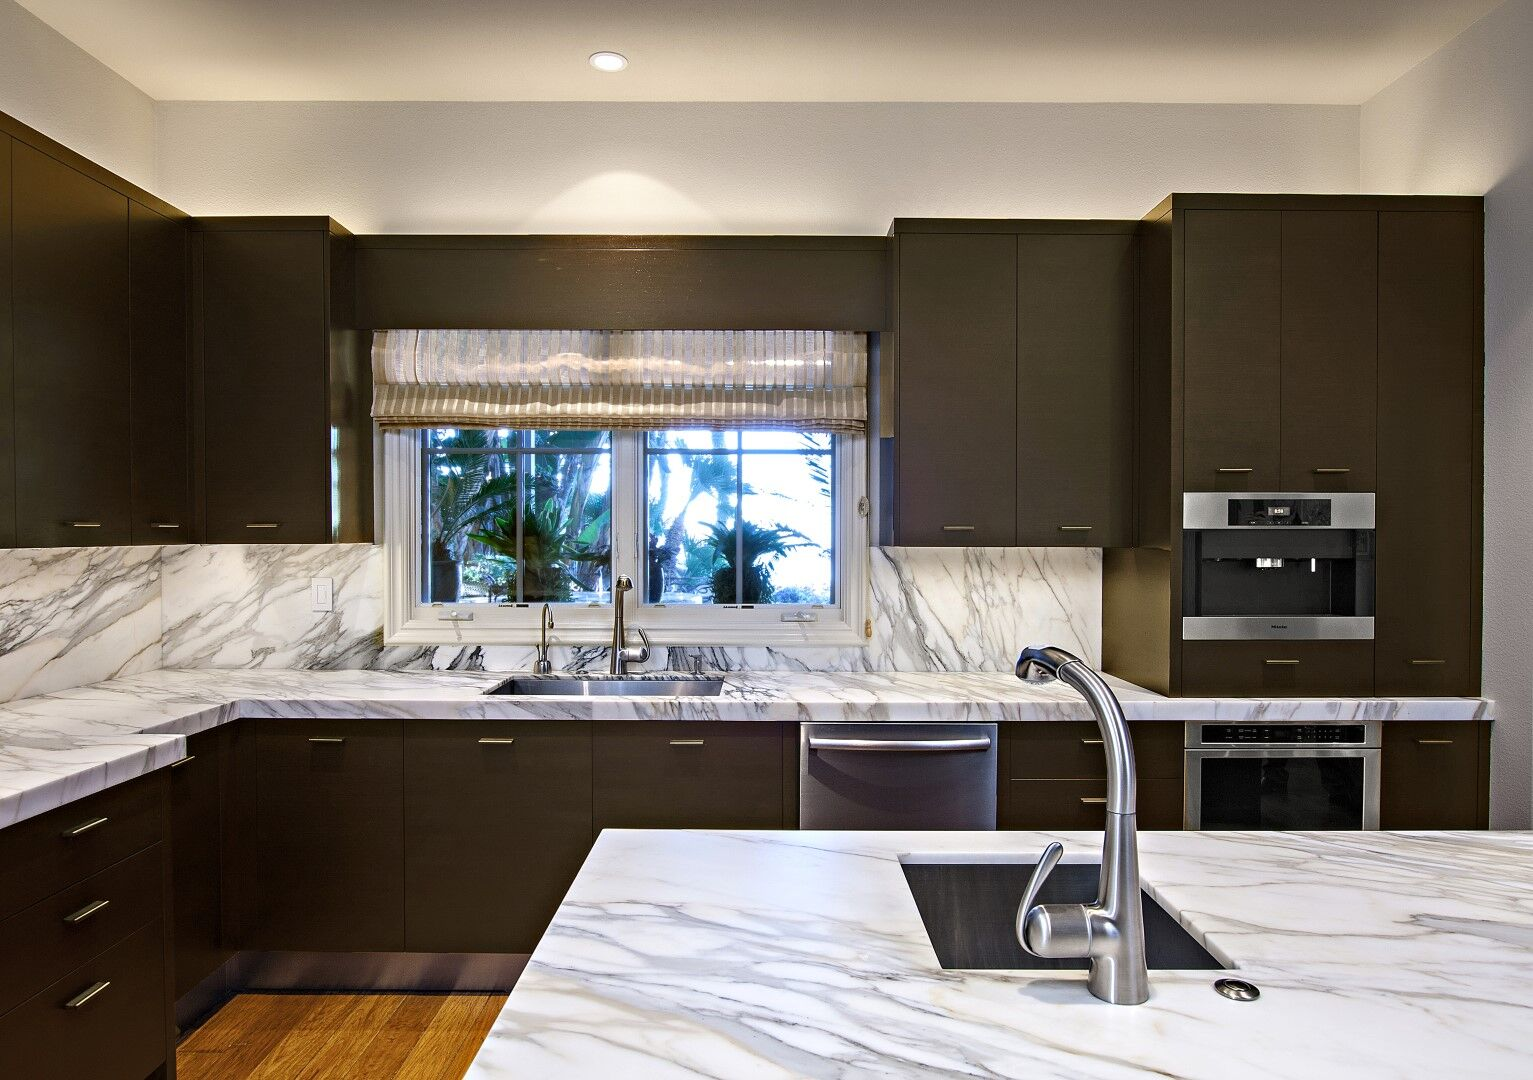 Kitchen Remodeling Orange County - Custom Kitchen Cabinets ...